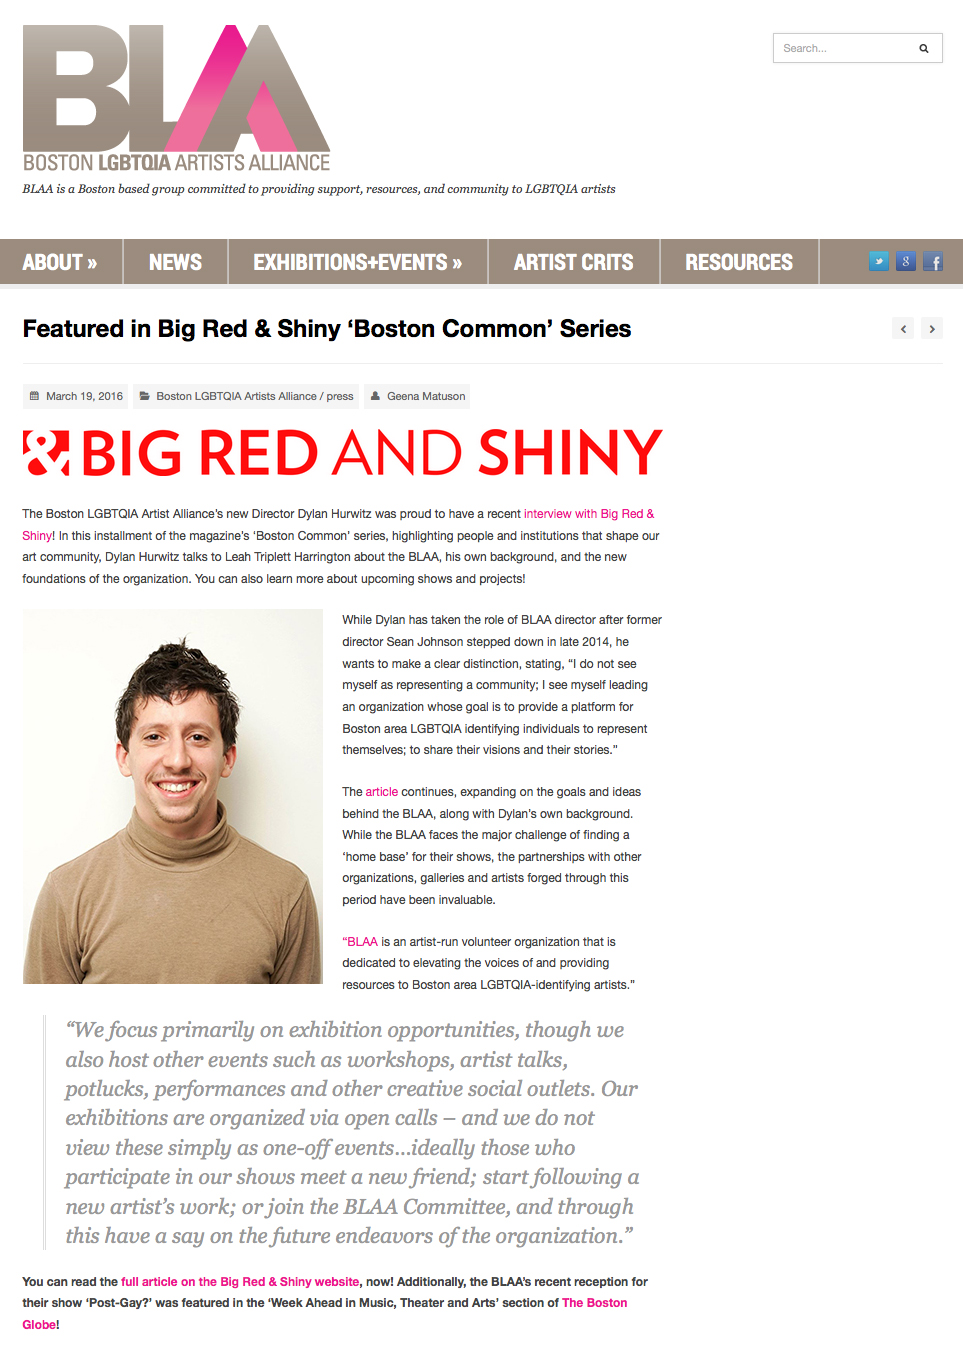 """Featured in Big Red & Shiny 'Boston Common' Series  Boston LGBTQIA Artist Alliance    """"While Dylan has taken the role of BLAA director after former director Sean Johnson stepped down in late 2014, he wants to make a clear distinction, stating, 'I do not see myself as representing a community; I see myself leading an organization whose goal is to provide a platform for Boston area LGBTQIA identifying individuals to represent themselves...'"""""""